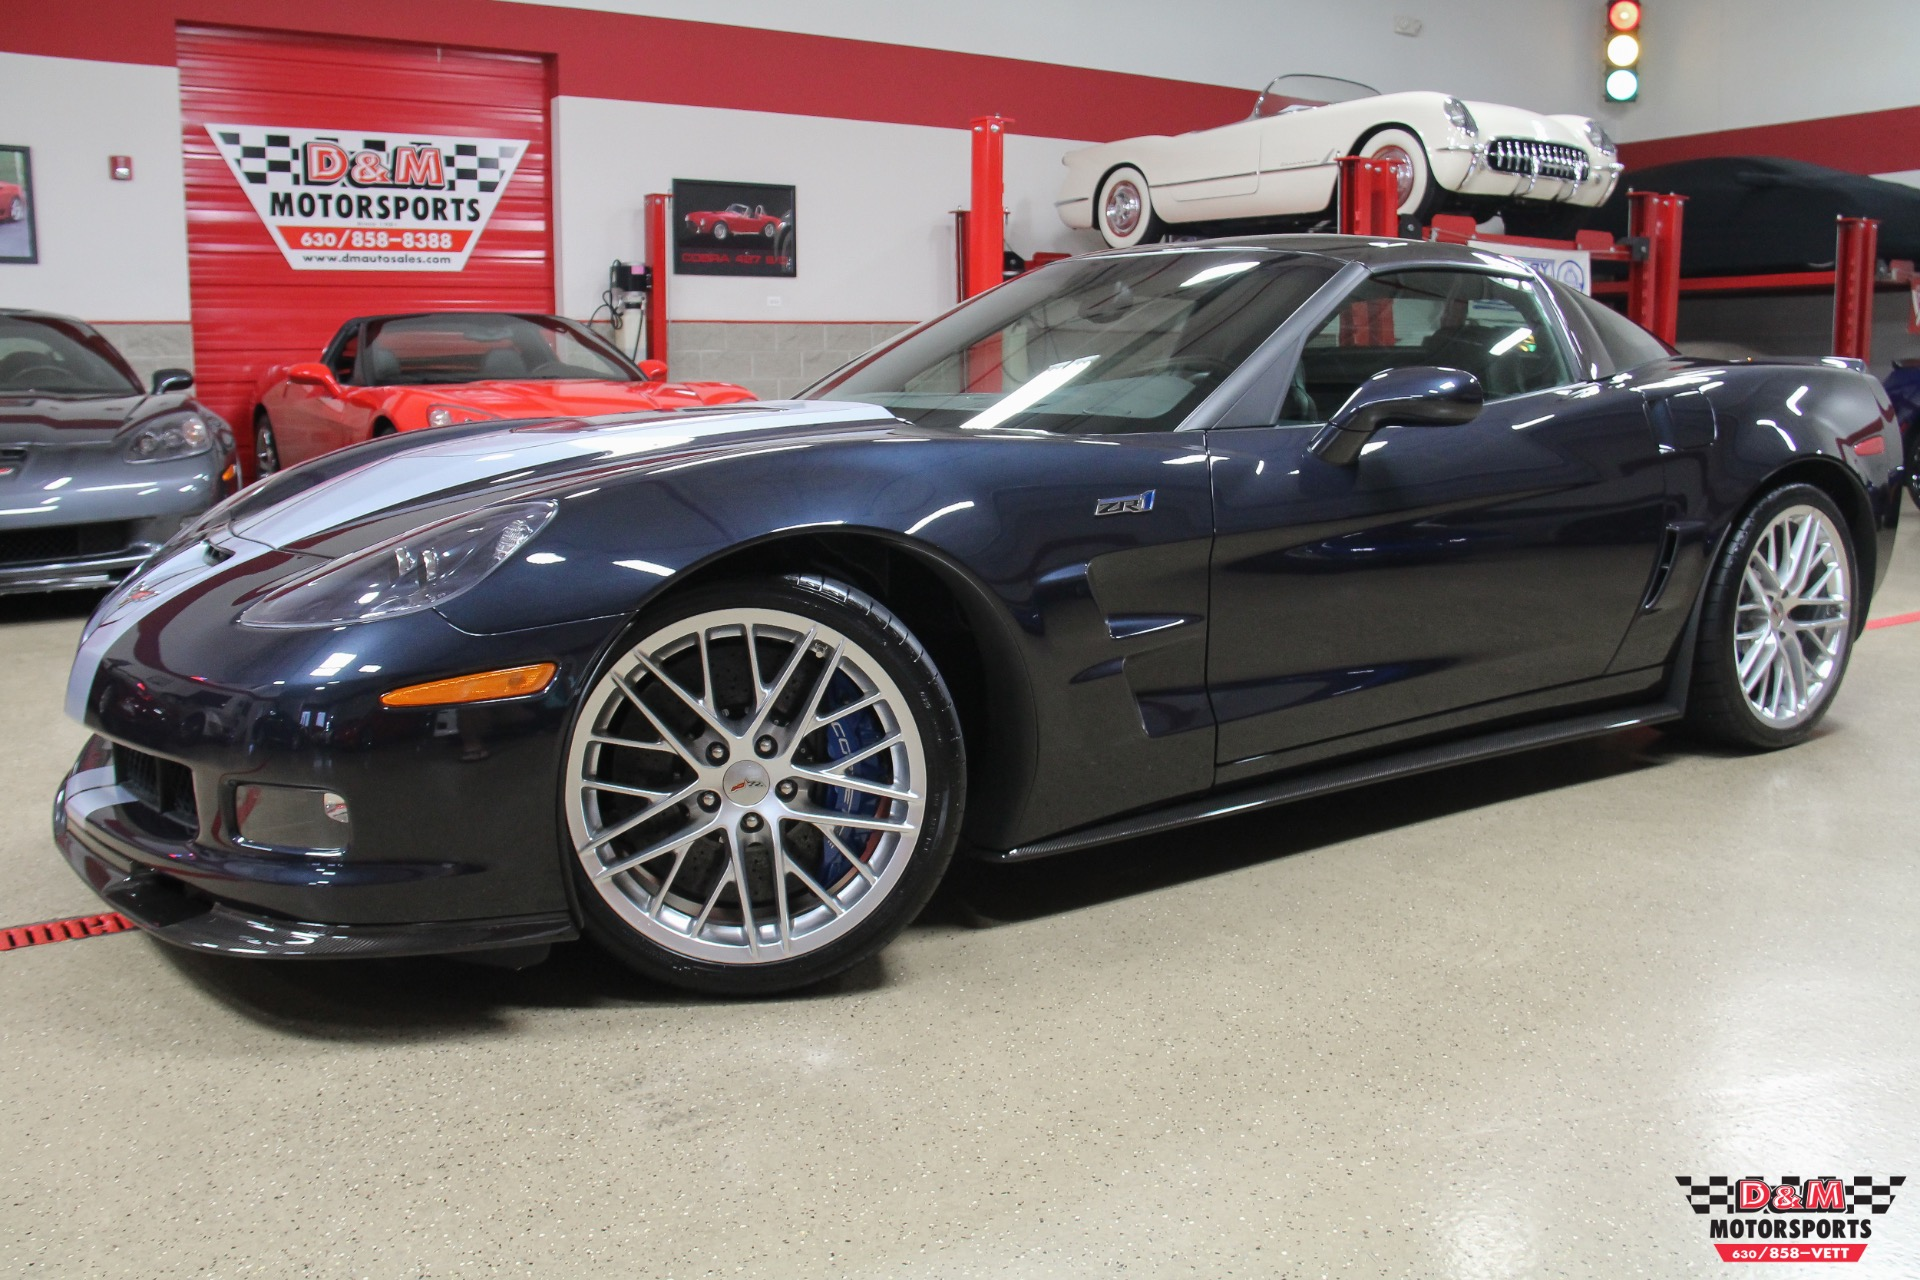 2013 Chevrolet Corvette ZR1 Stock M6333 for sale near Glen Ellyn